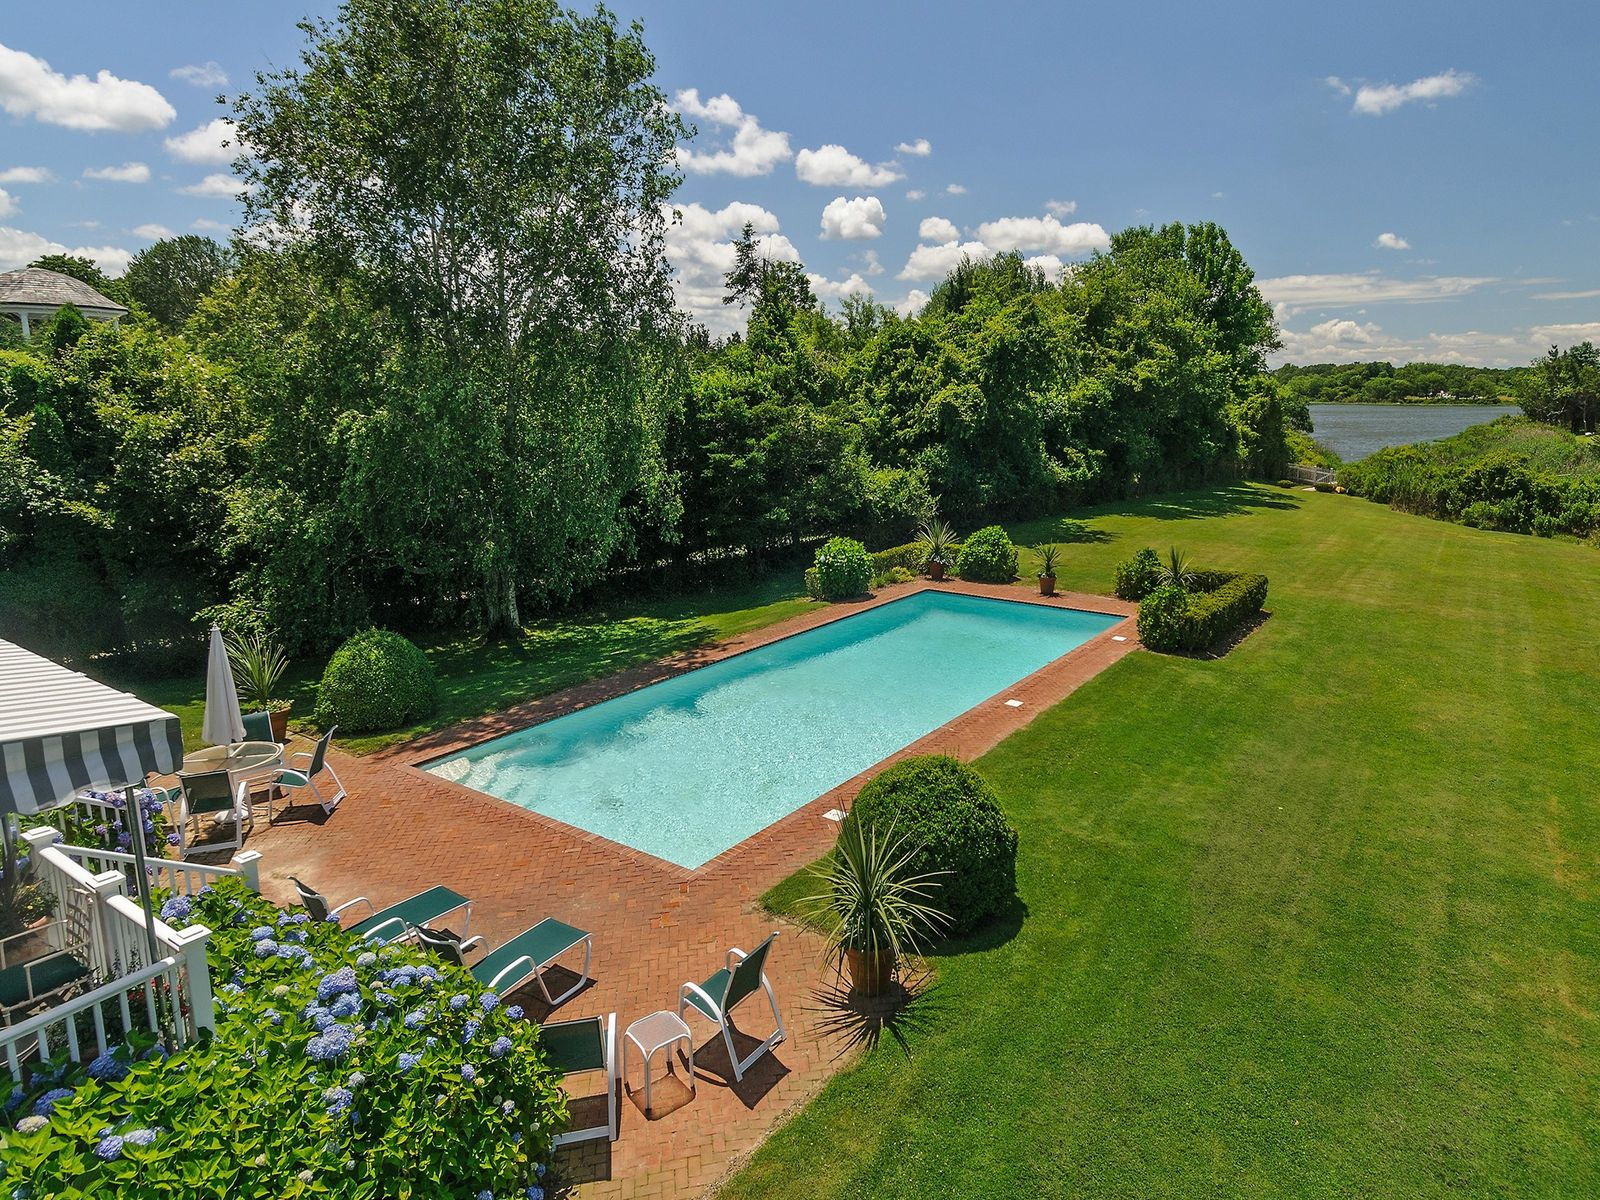 Waterfront Location - Estate Section, Southampton NY Single Family Home - Hamptons Real Estate